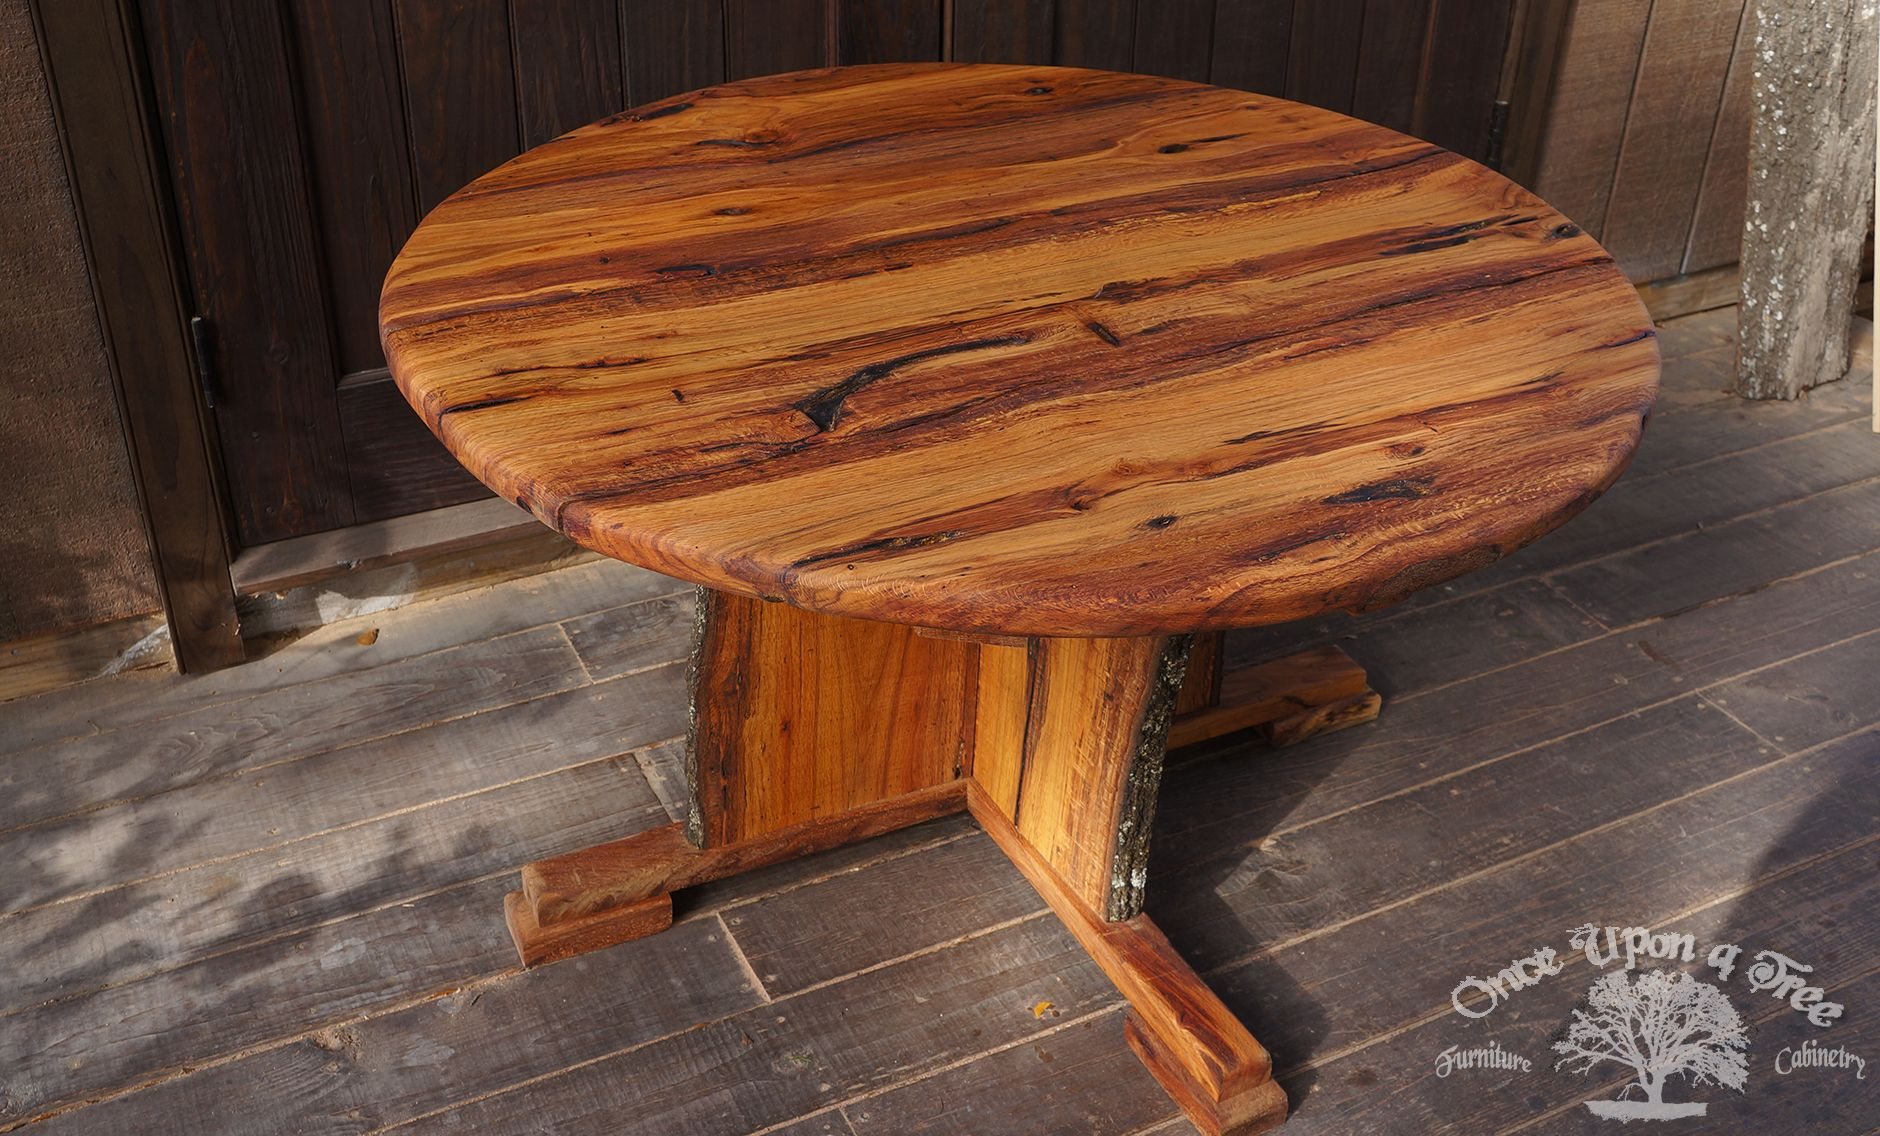 48 Swamp Oak Picnic Table Made From 1 Tree That